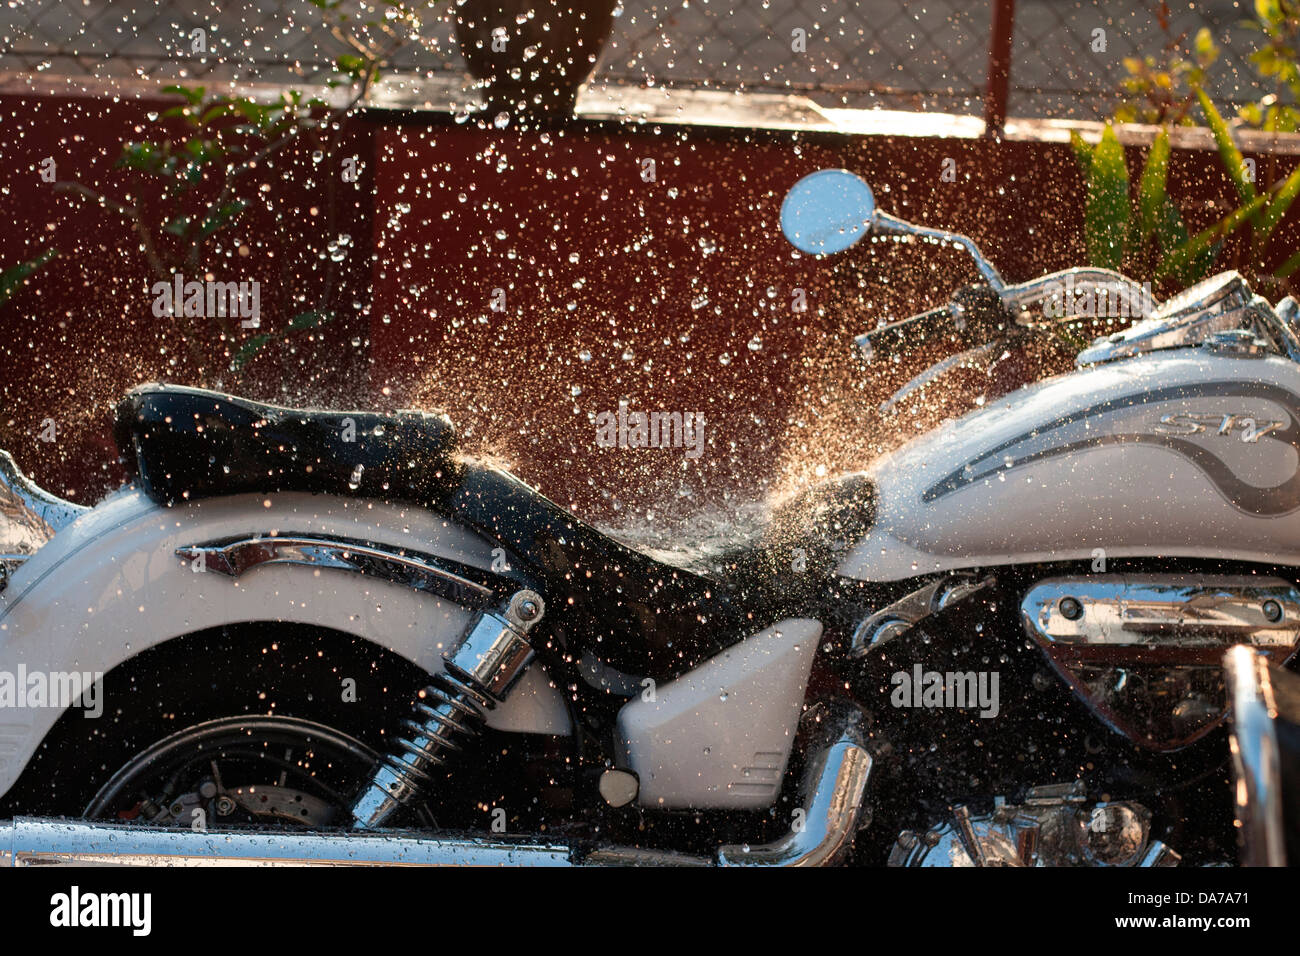 The Hyosung 700cc cruiser bike, one of the more affordable cruisers in India being cleaned and washed early morning - Stock Image